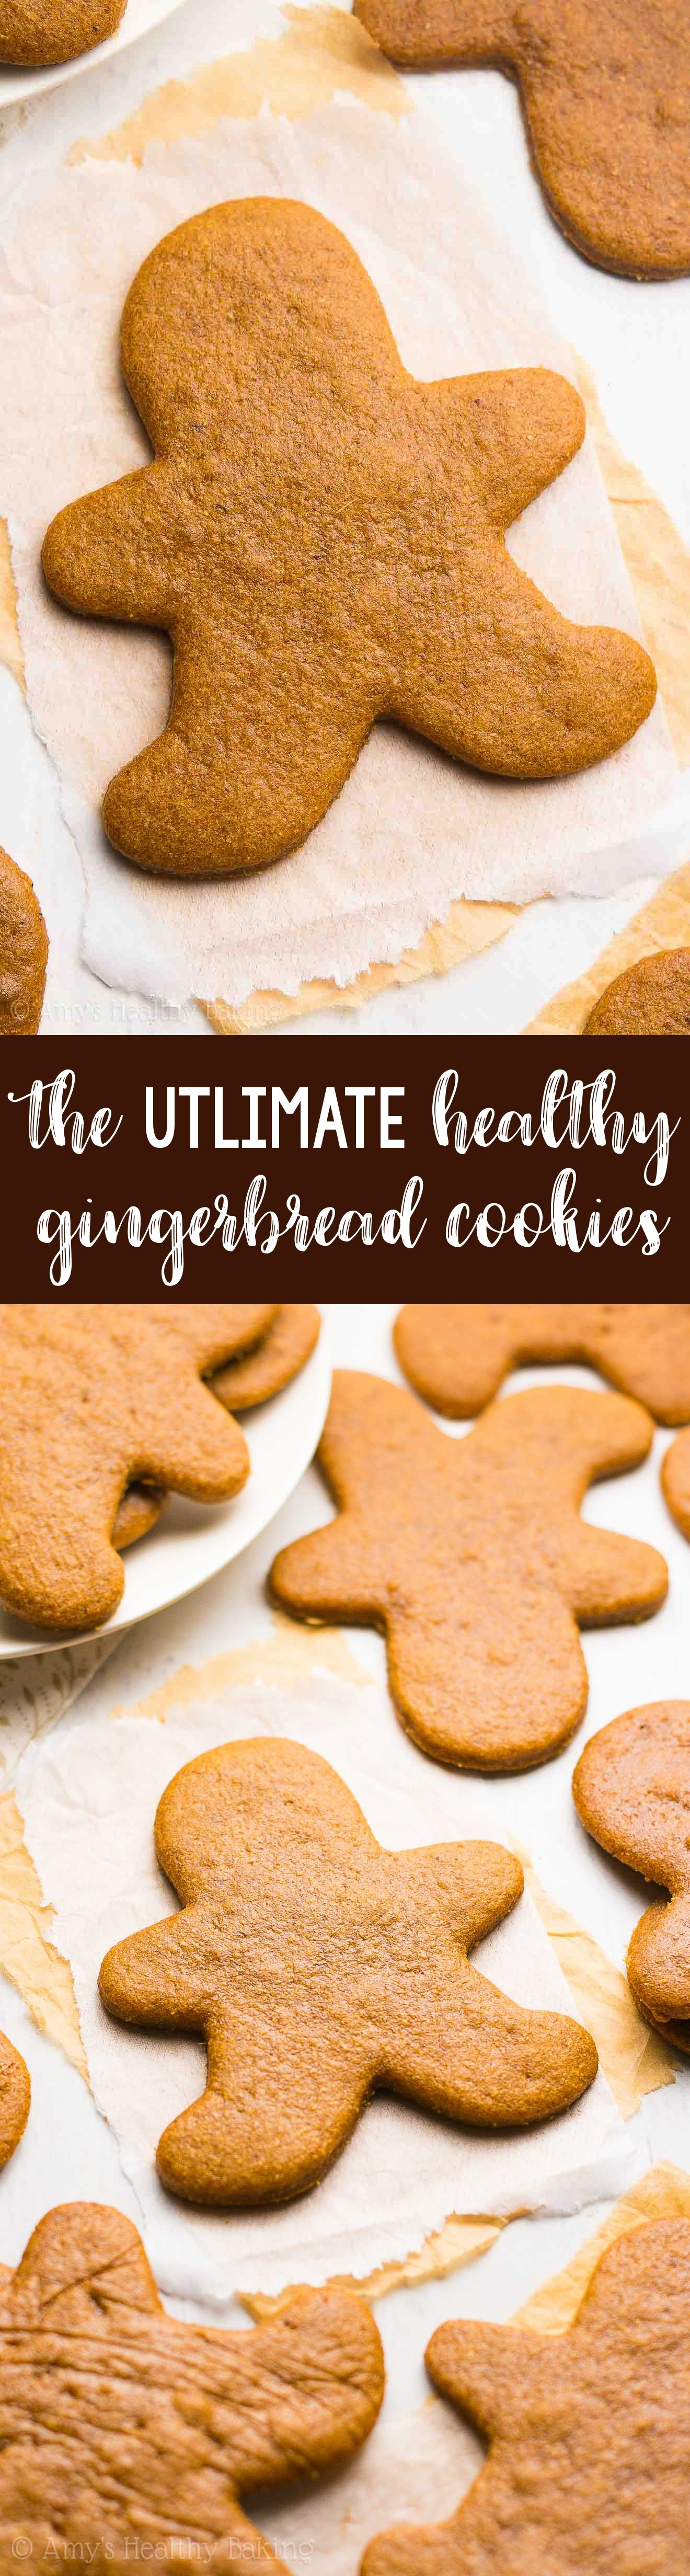 The Ultimate Healthy Gingerbread Cookies -- these skinny cookies don't taste healthy at all! Only 52 calories! You'll never need another gingerbread cookie recipe again!